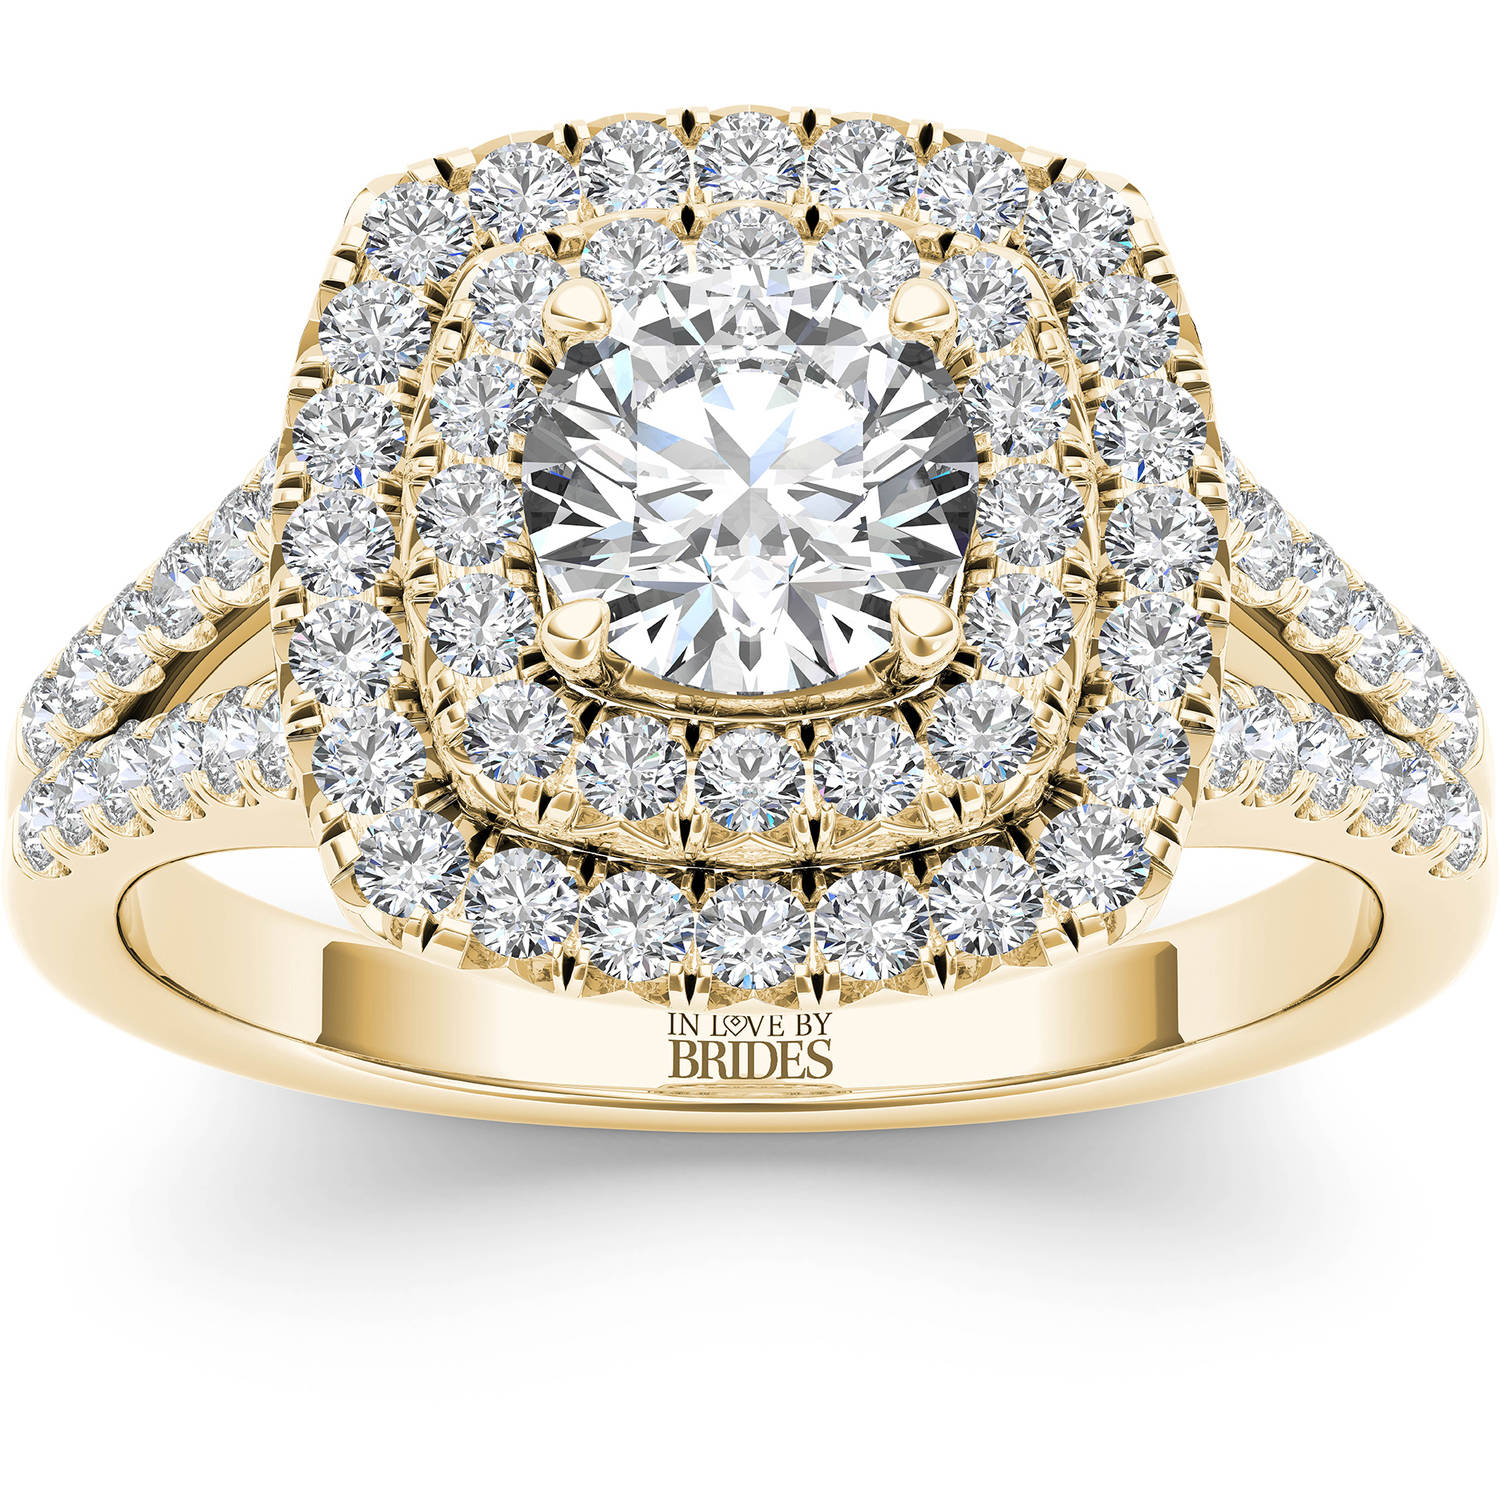 IN LOVE BY BRIDES 1-1/2 Carat T.W. Certified Cushion Halo Diamond 14kt Yellow Gold Engagement Ring